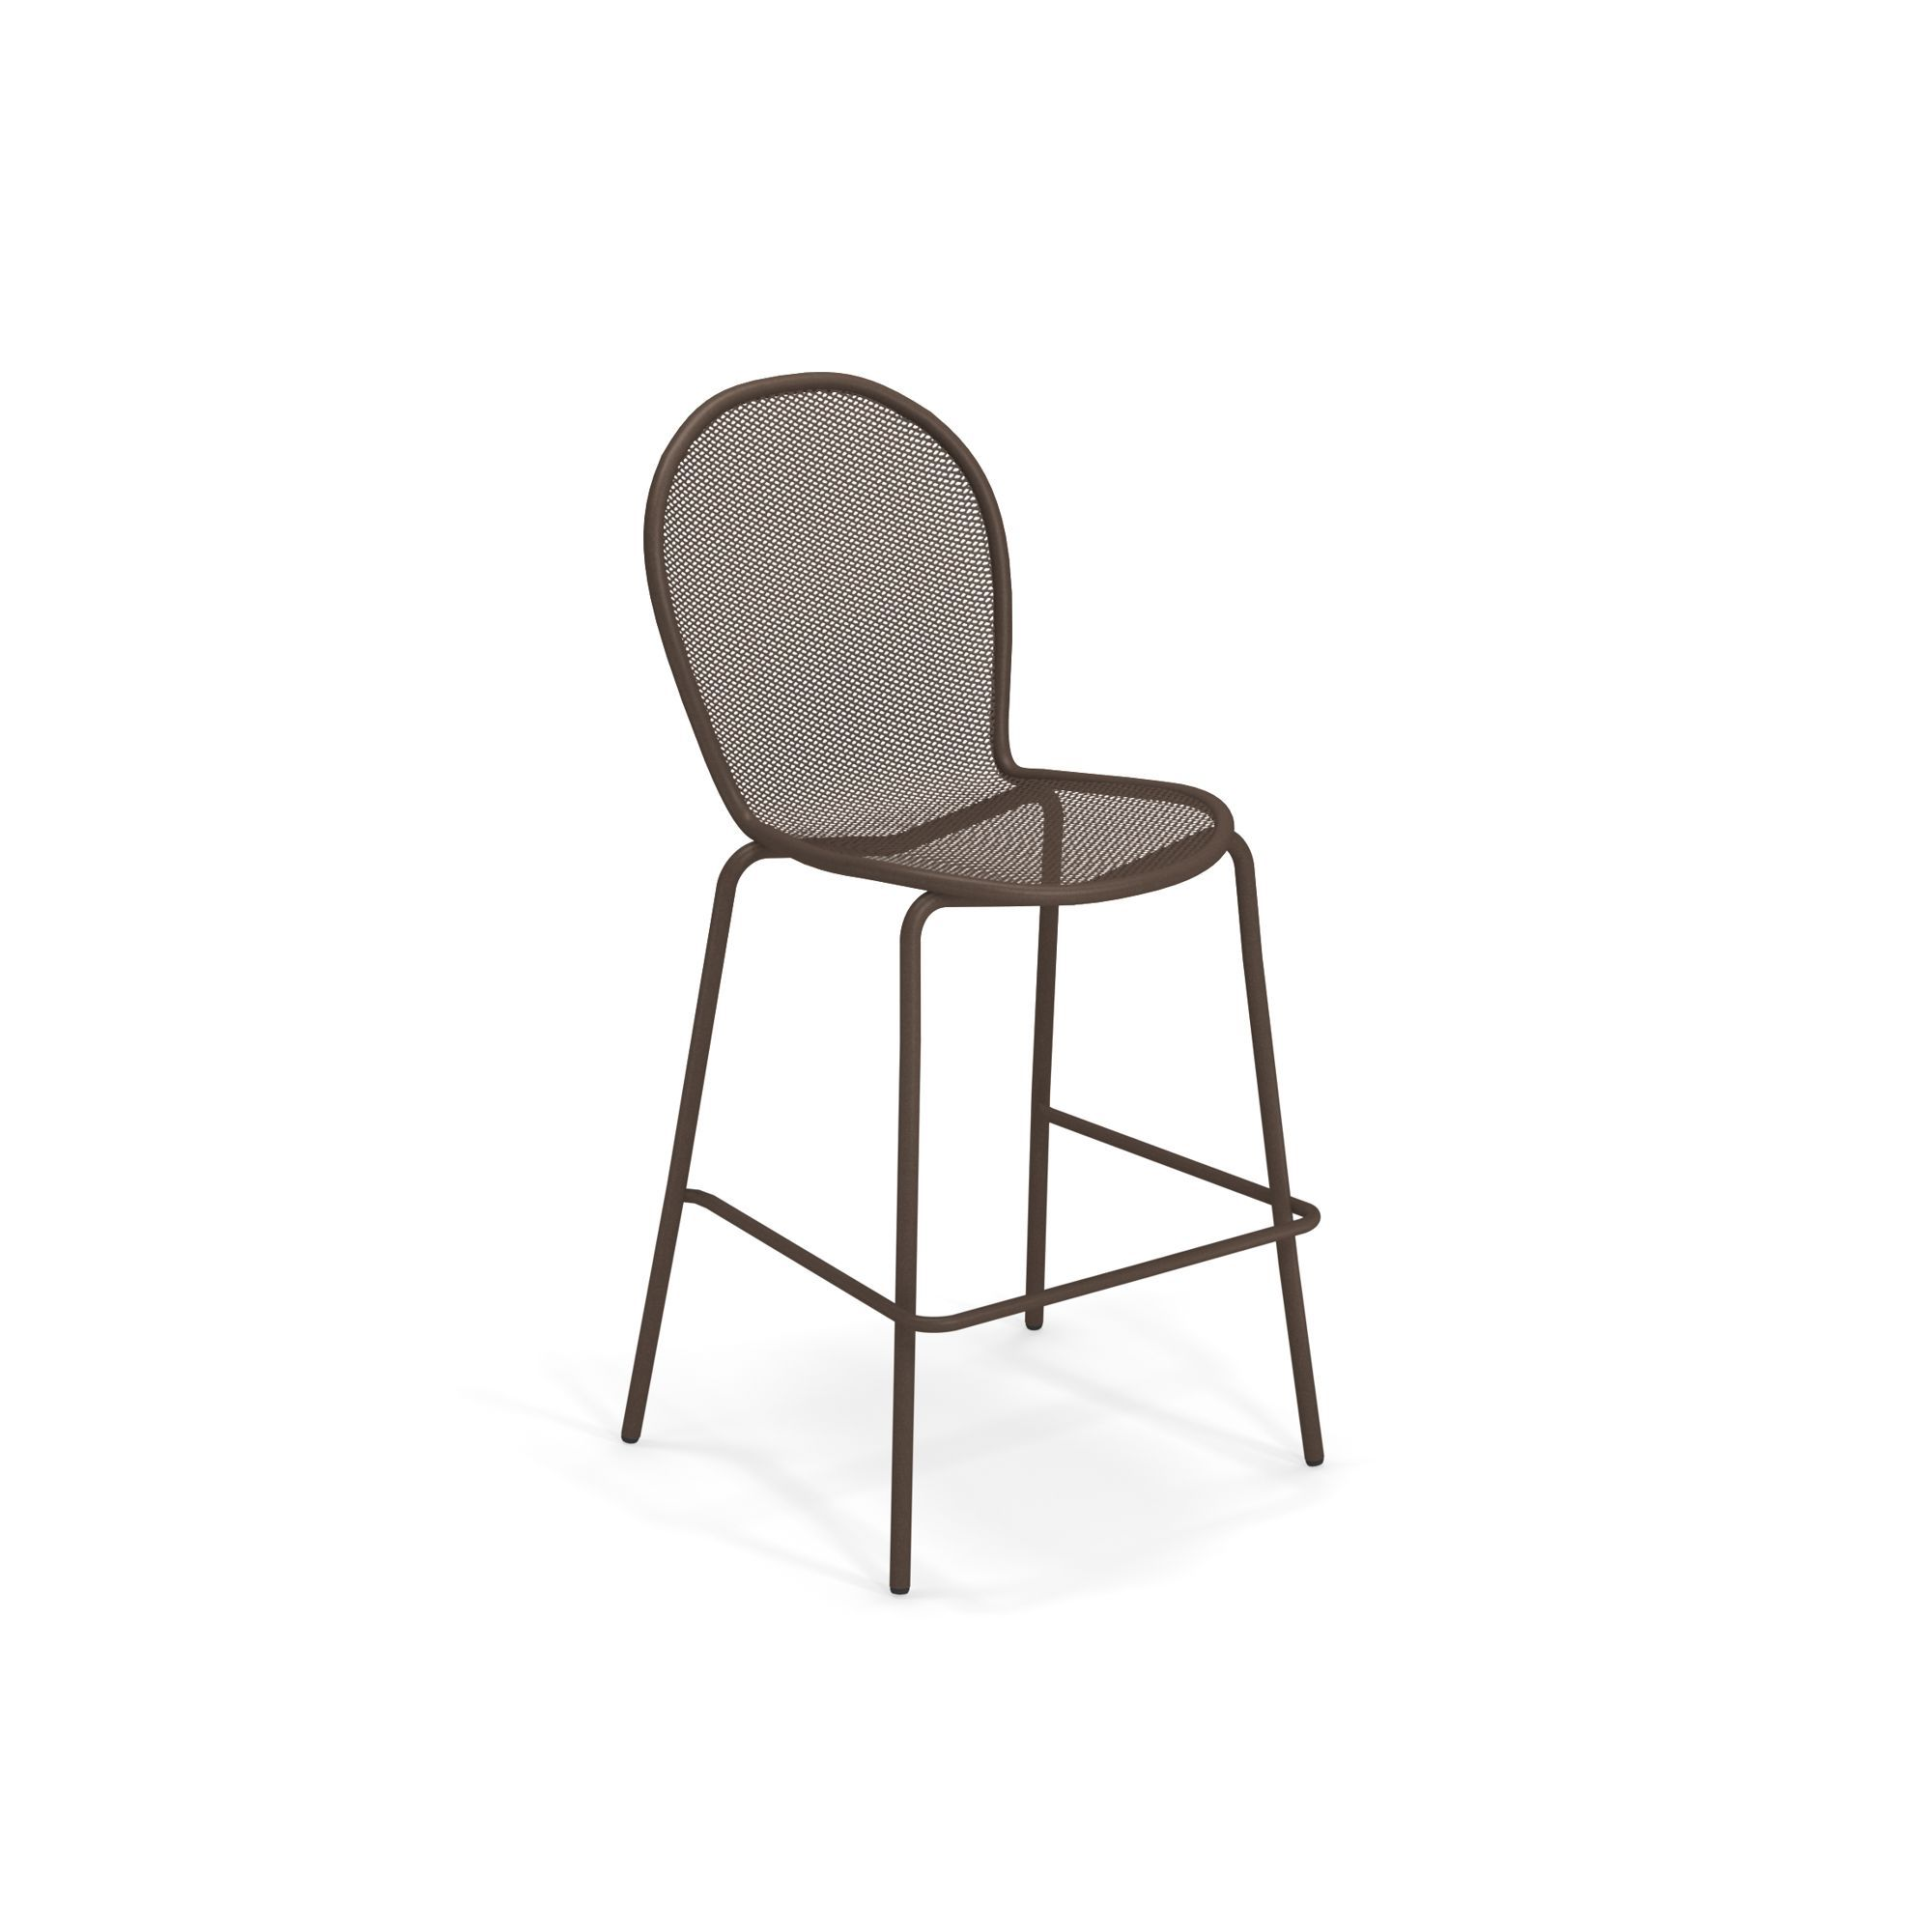 emuamericas, llc 128-41 bar stool, stacking, outdoor